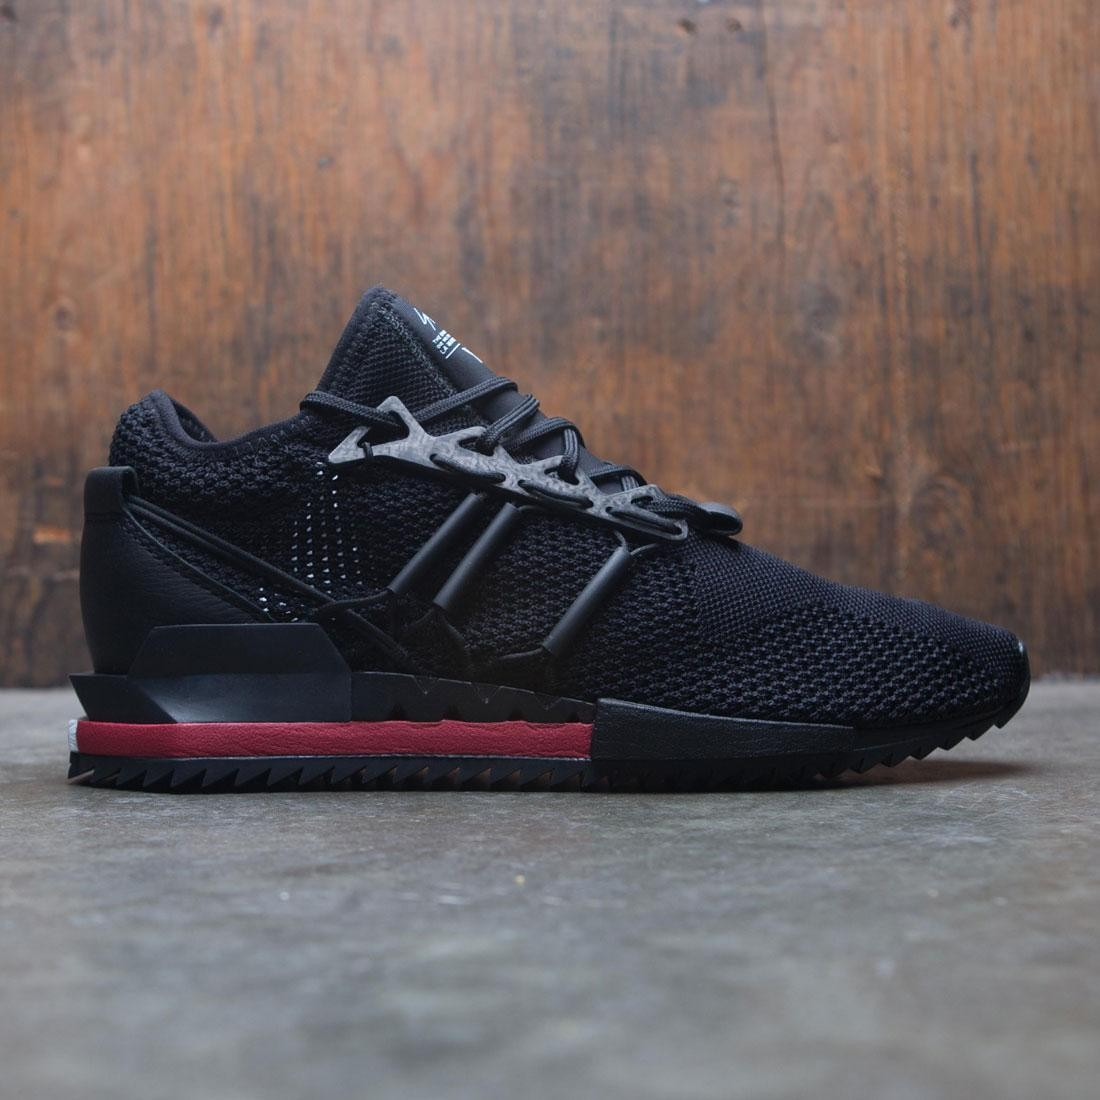 0993e9e9a6ff Adidas Y-3 Men Harigane black chalk white chili pepper